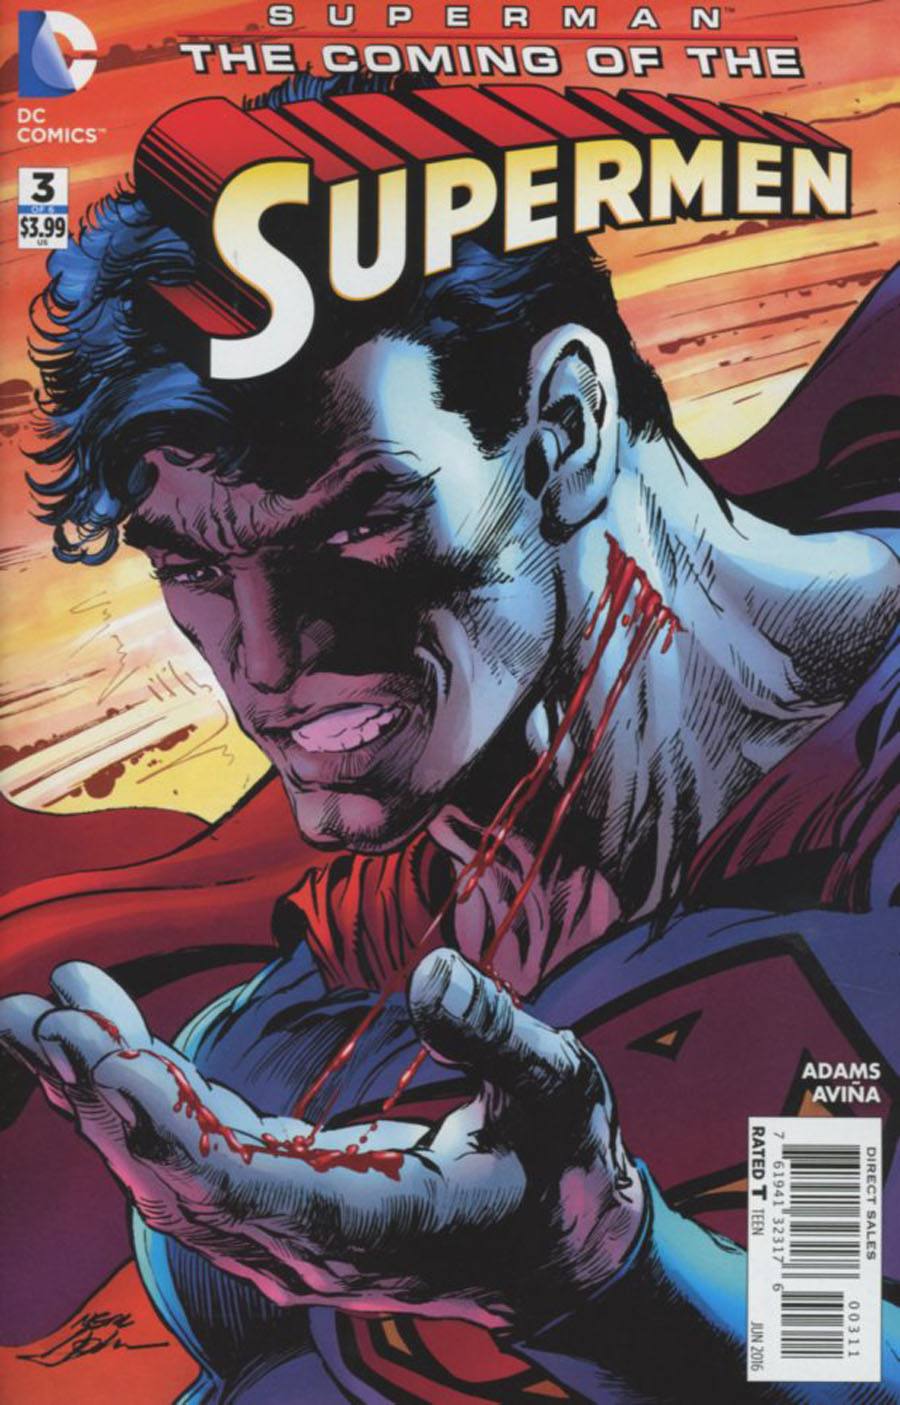 Superman: Coming of the Supermen #3